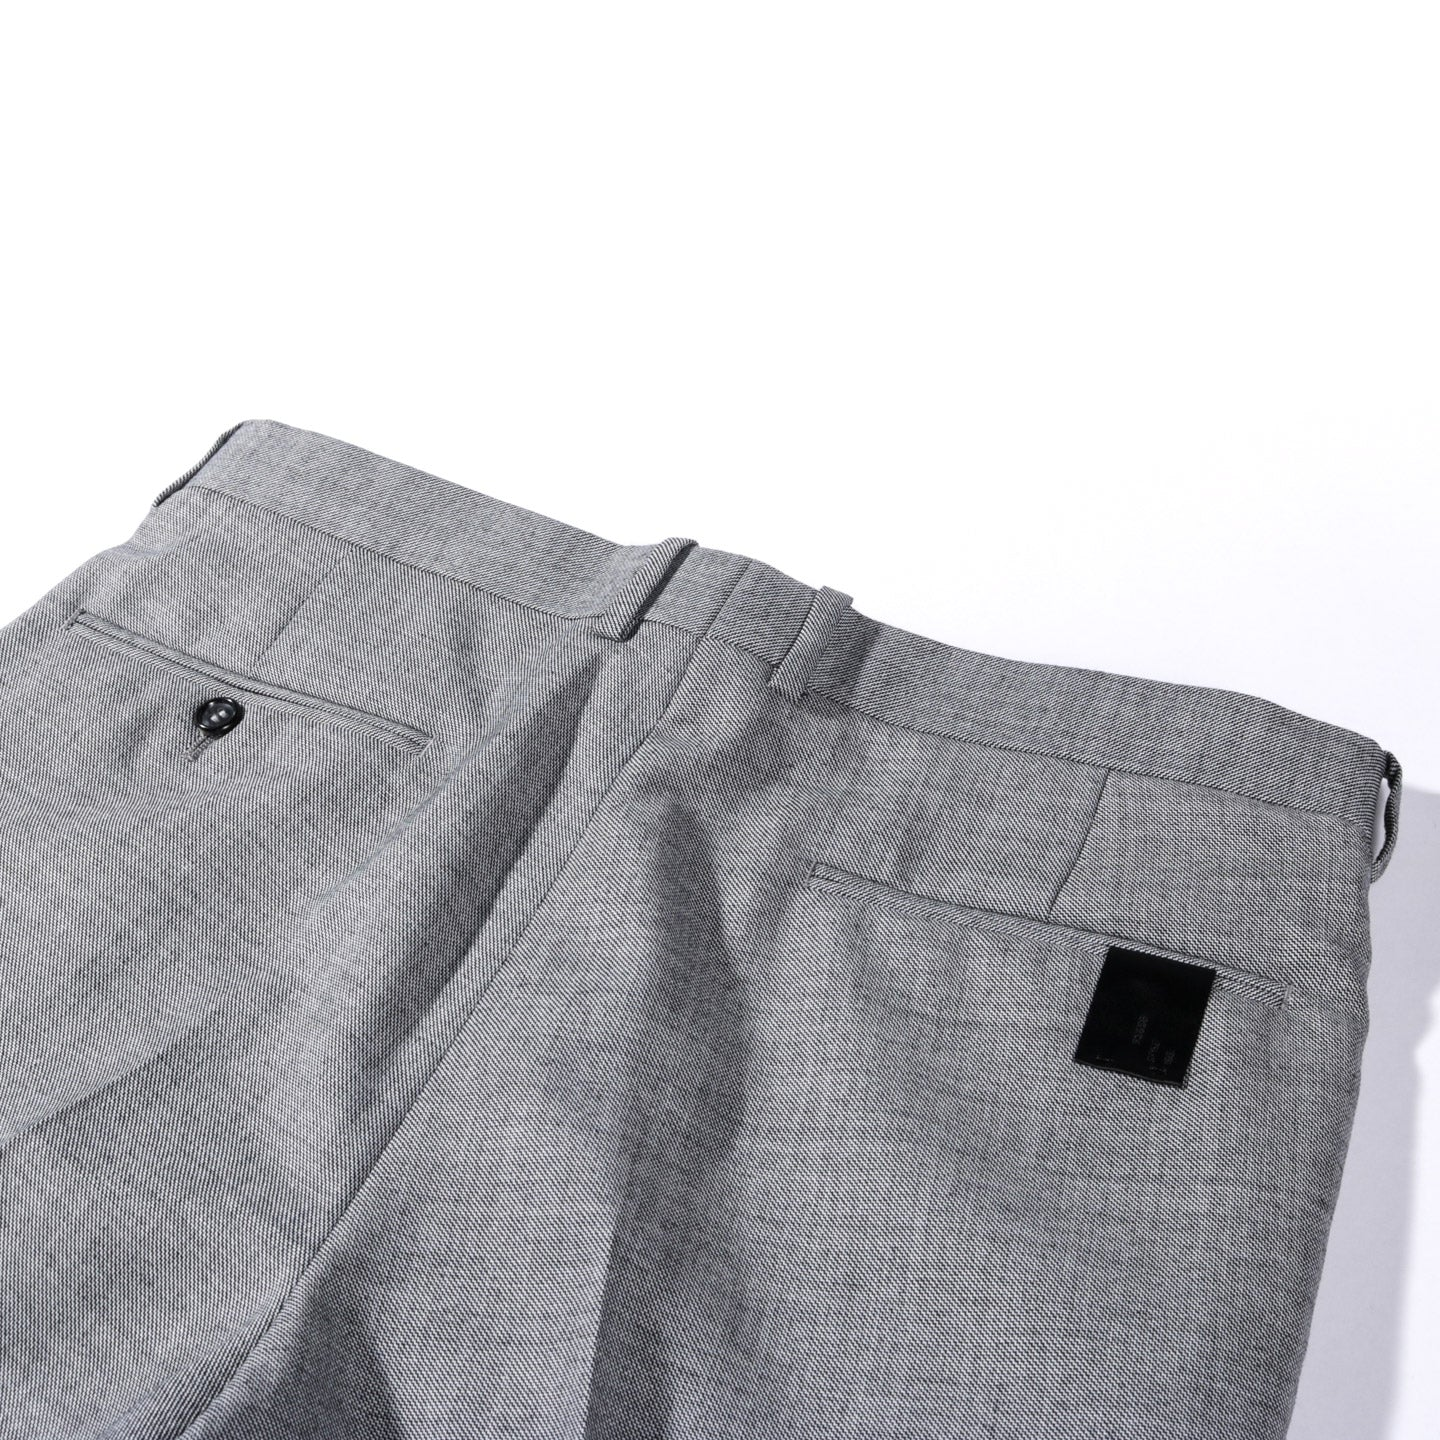 N.HOOLYWOOD 2201-PT05 TAPERED SUIT PANTS GRAY